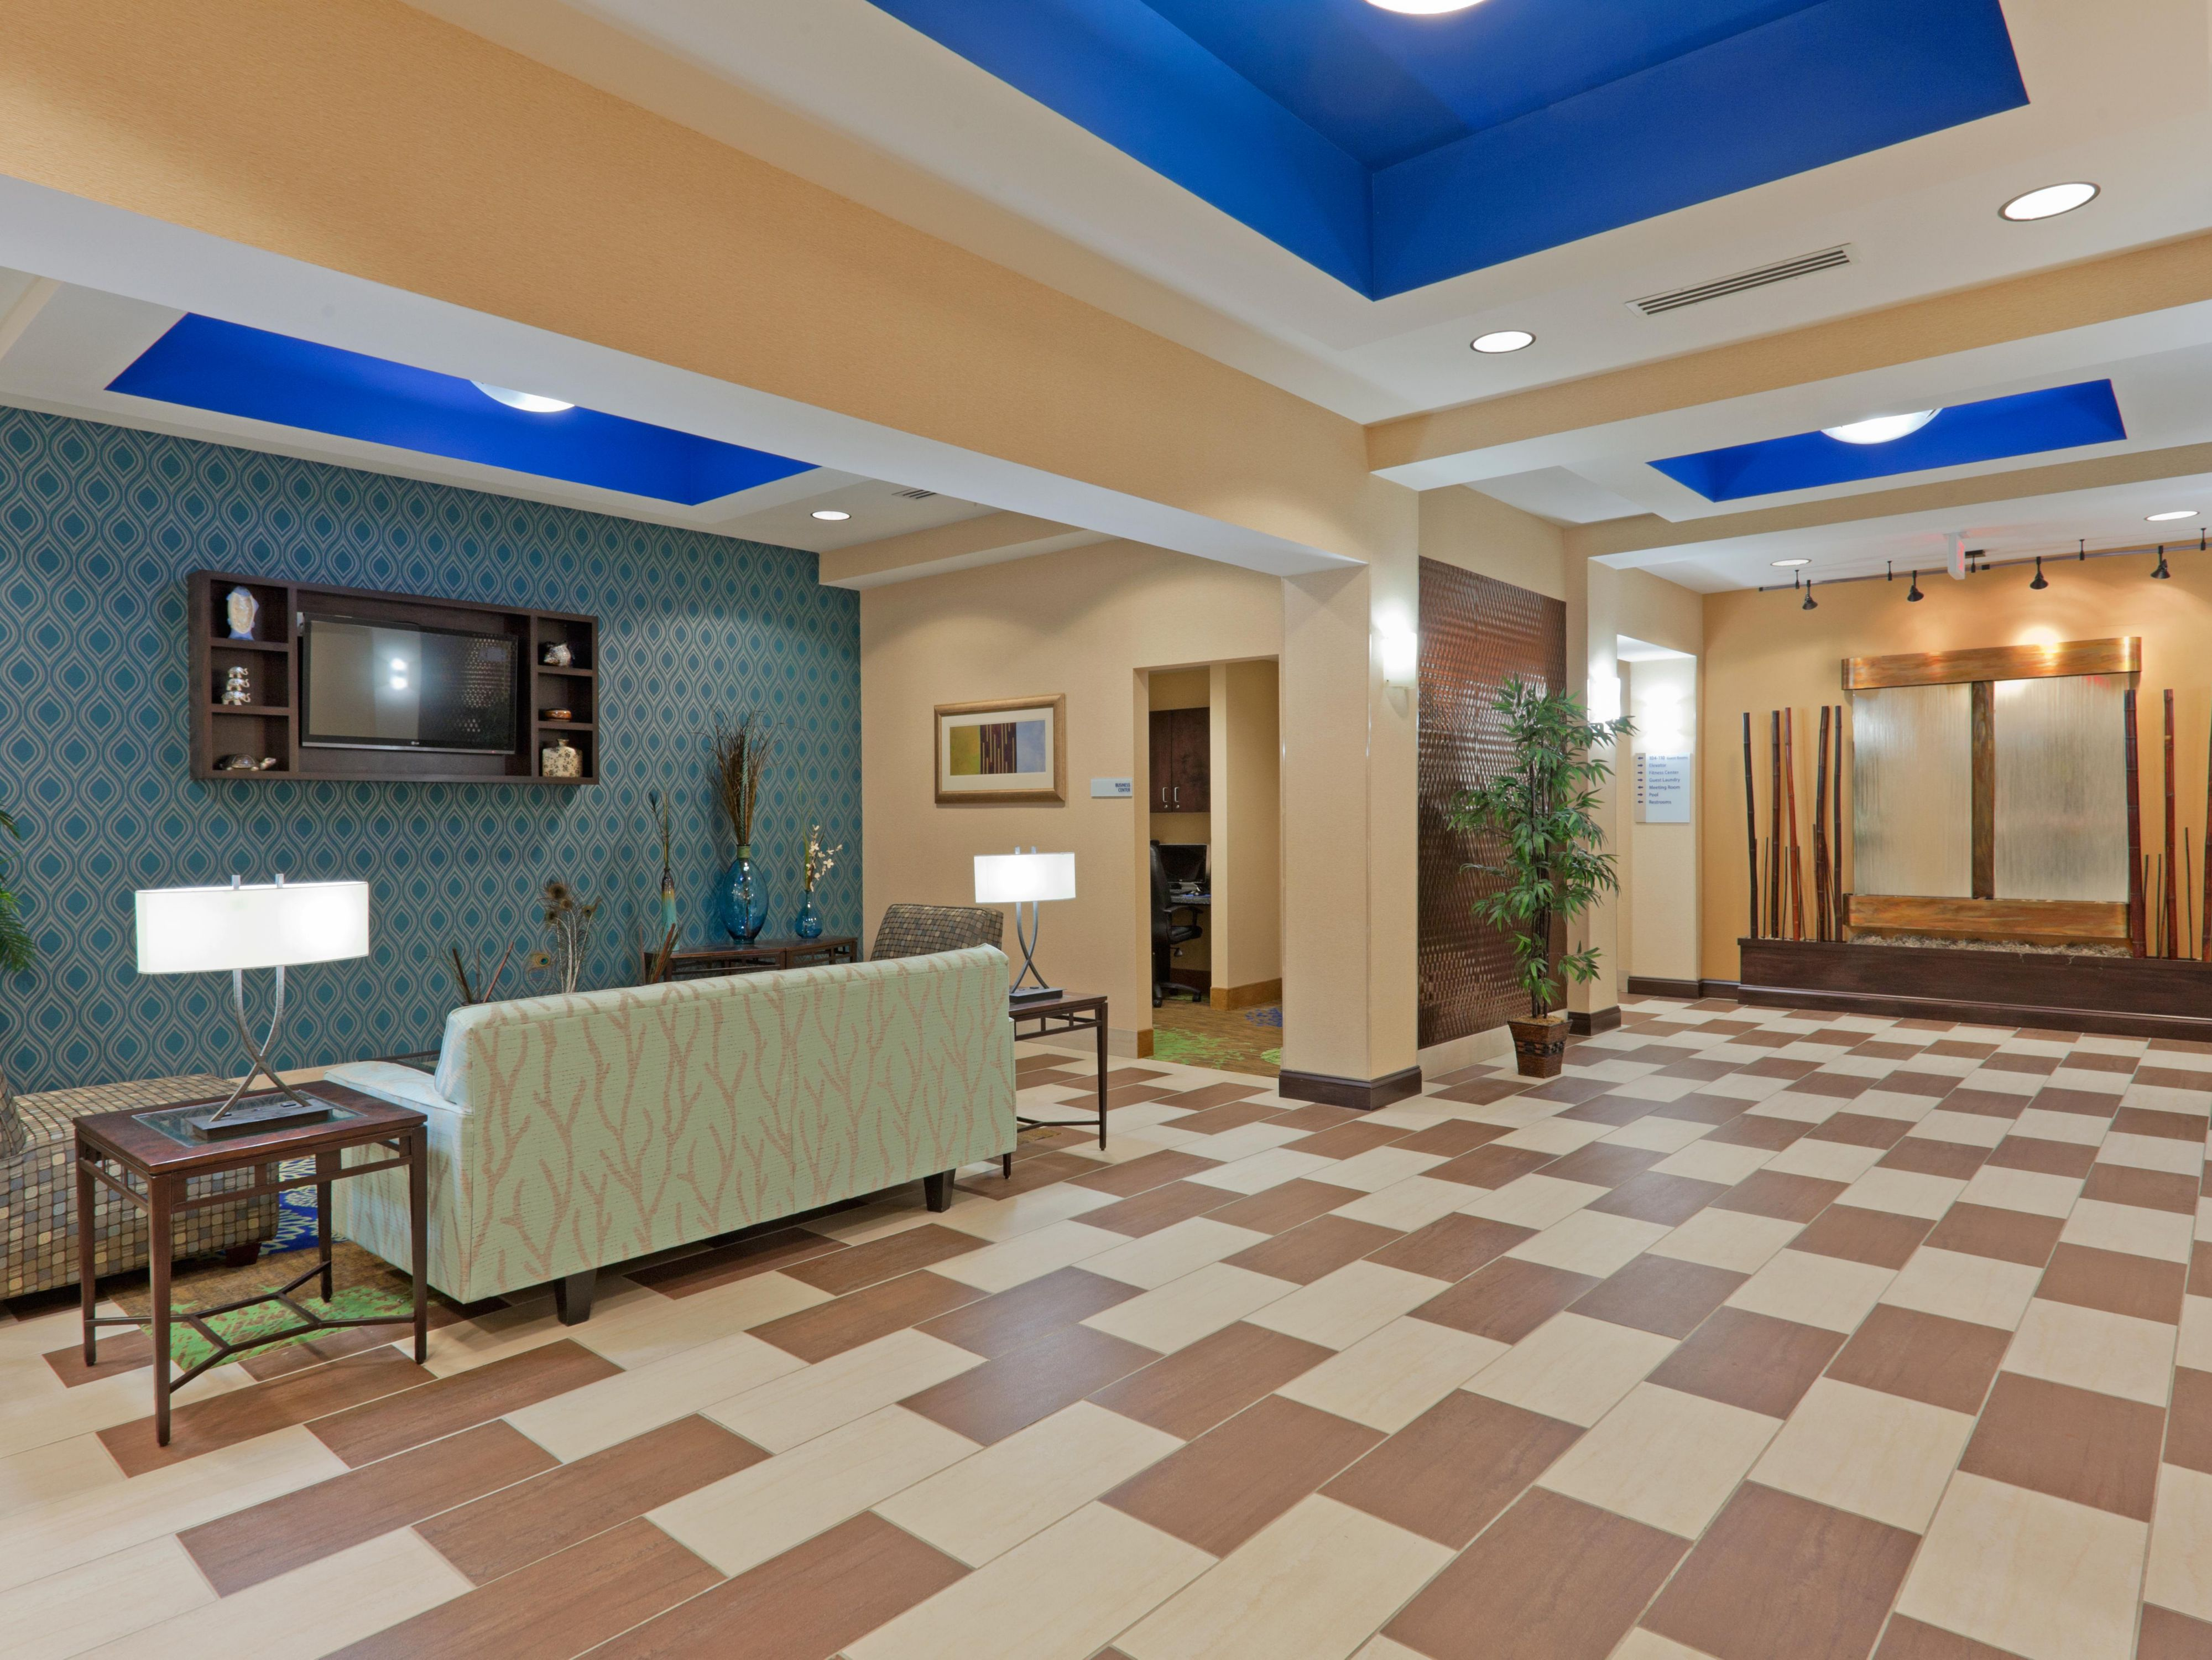 Hotel Lobby at entrance from front